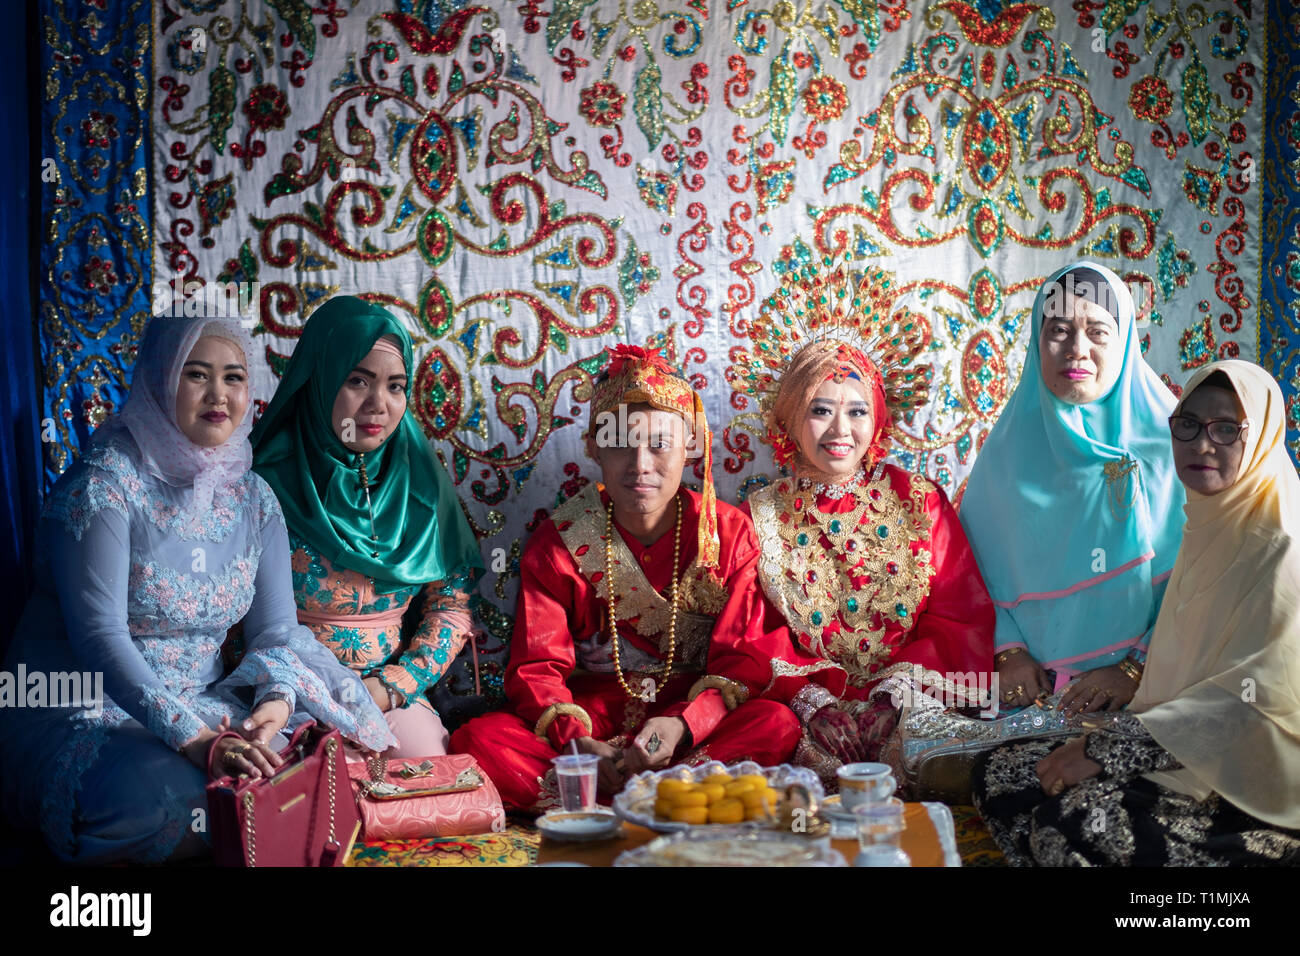 A newly married couple and their family at a wedding celebration, Sulawesi, Indonesia - Stock Image